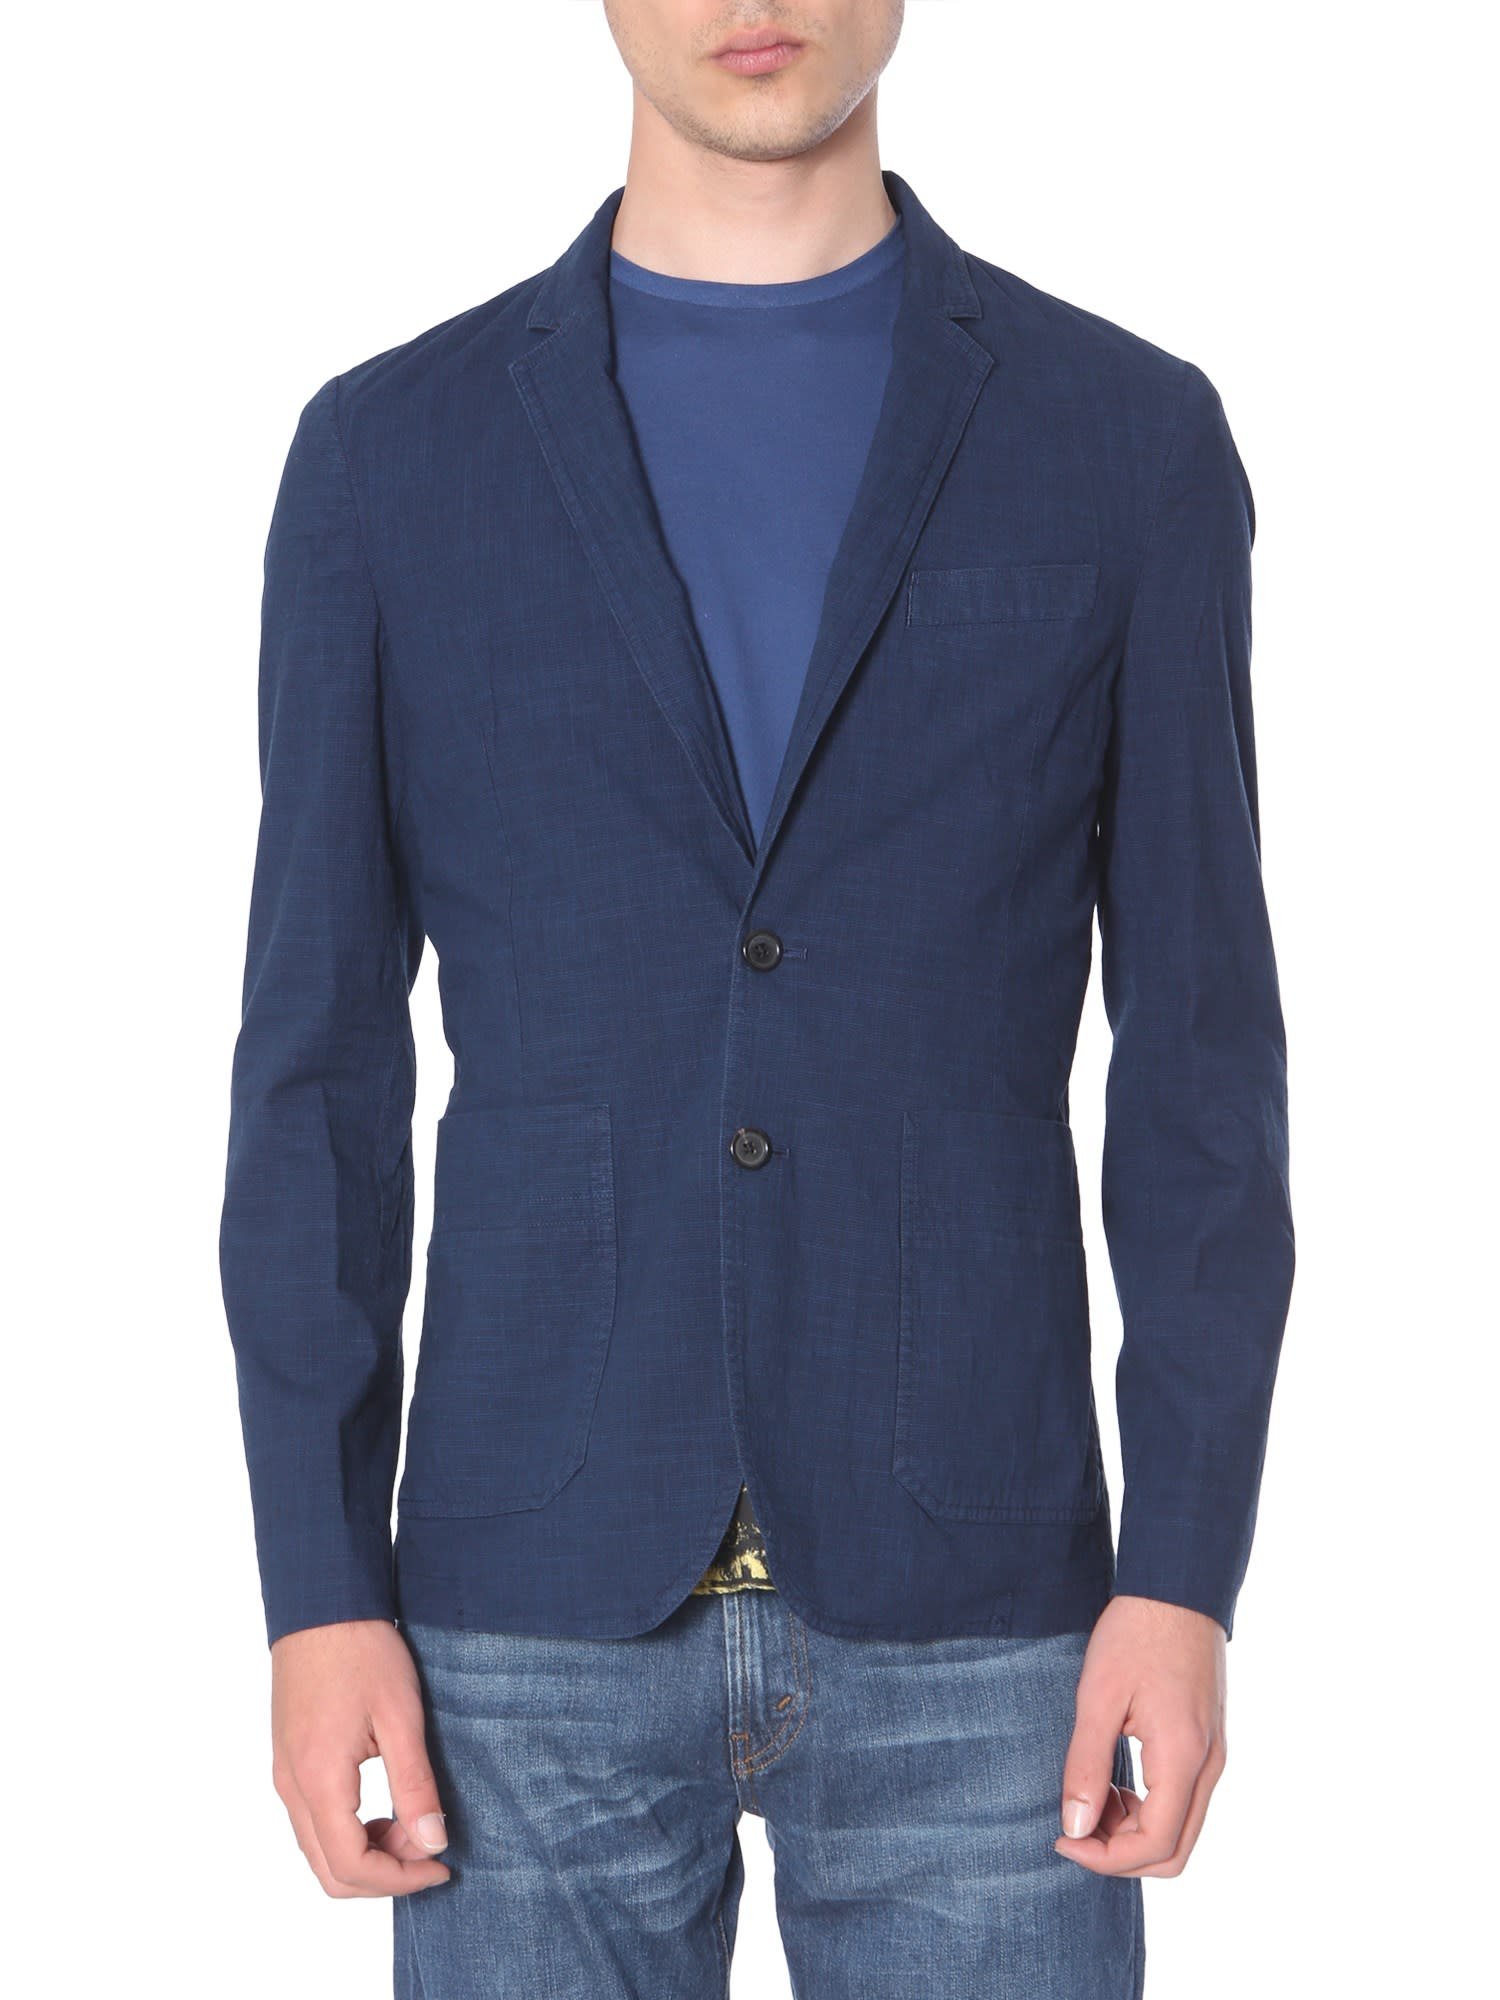 PS by Paul Smith Deconstructed Jacket